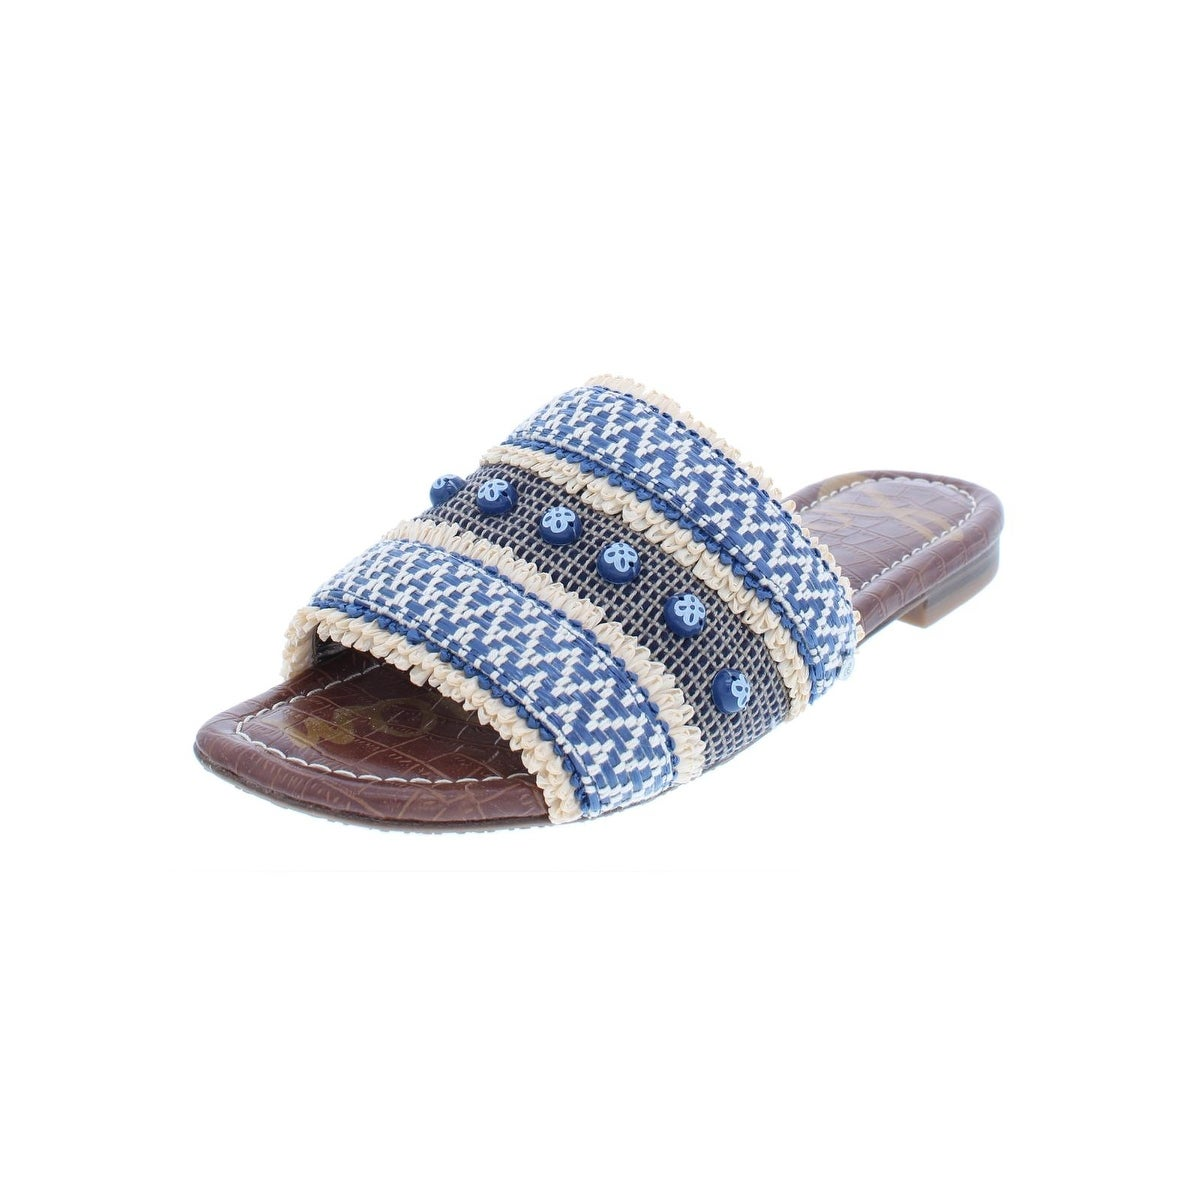 a75a0fcf6 Buy Sam Edelman Women s Sandals Online at Overstock